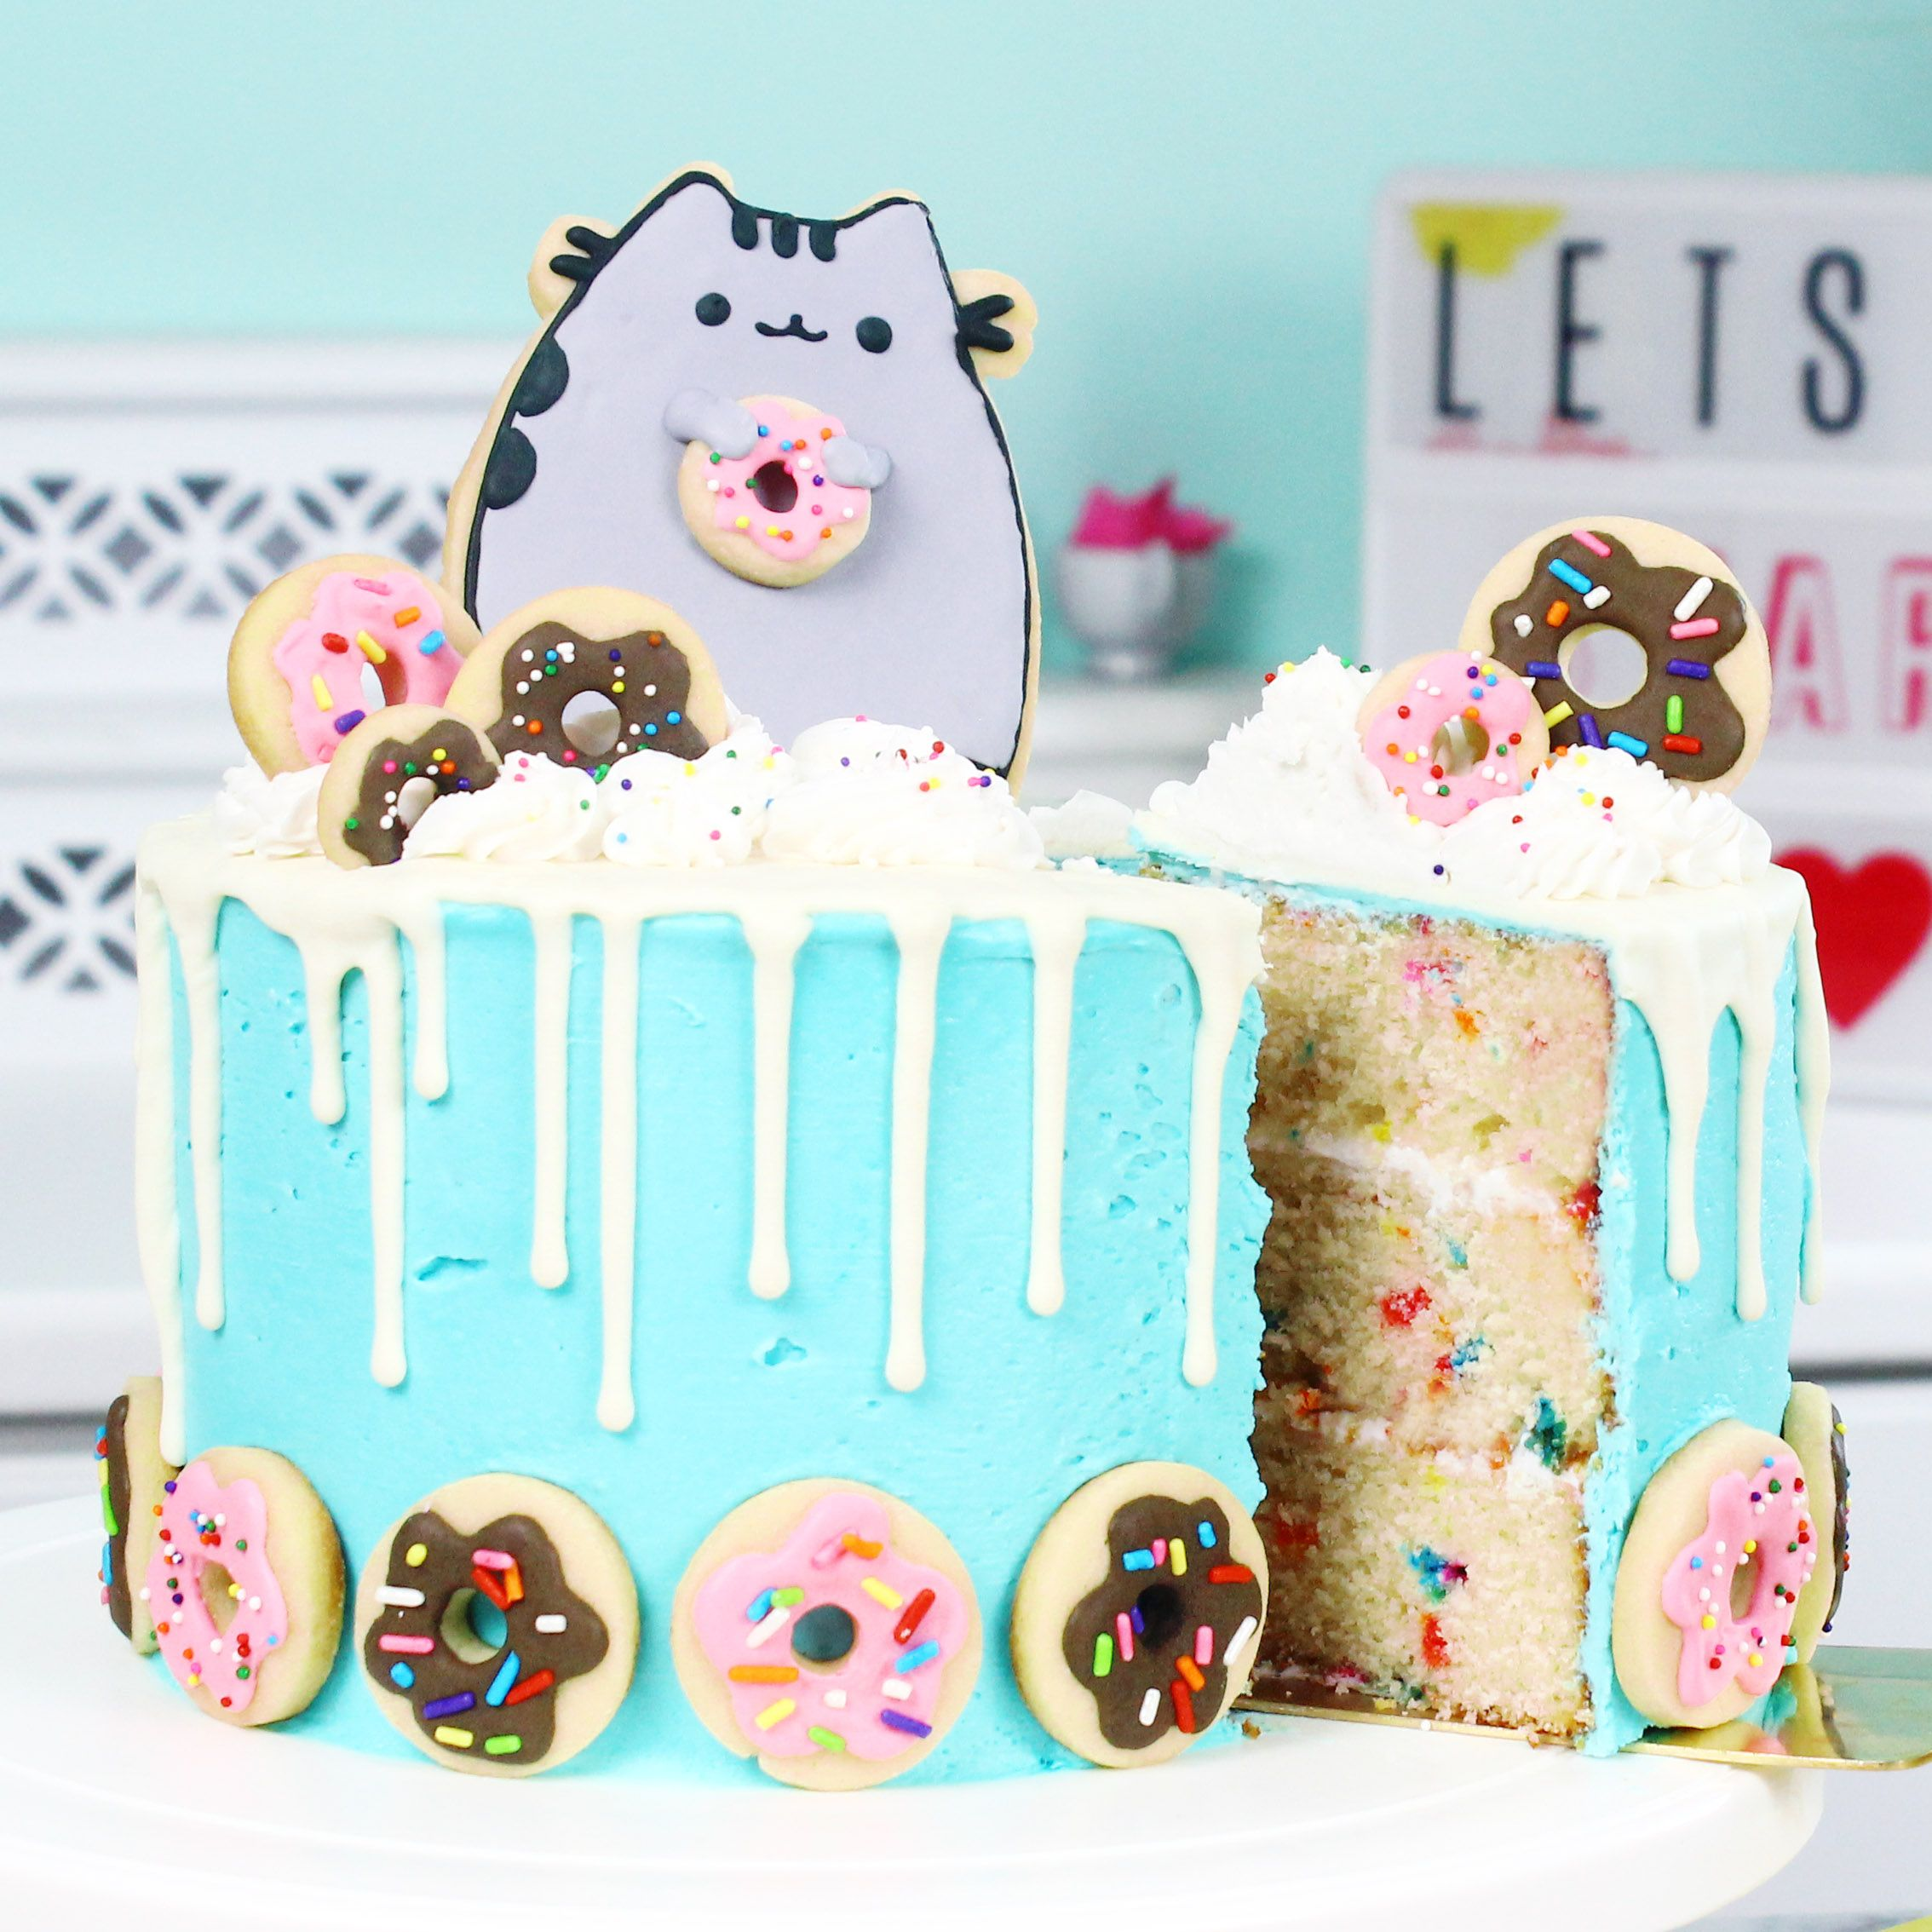 Birthday Party Cat Ears: How To Make A Pusheen Donut Cake!